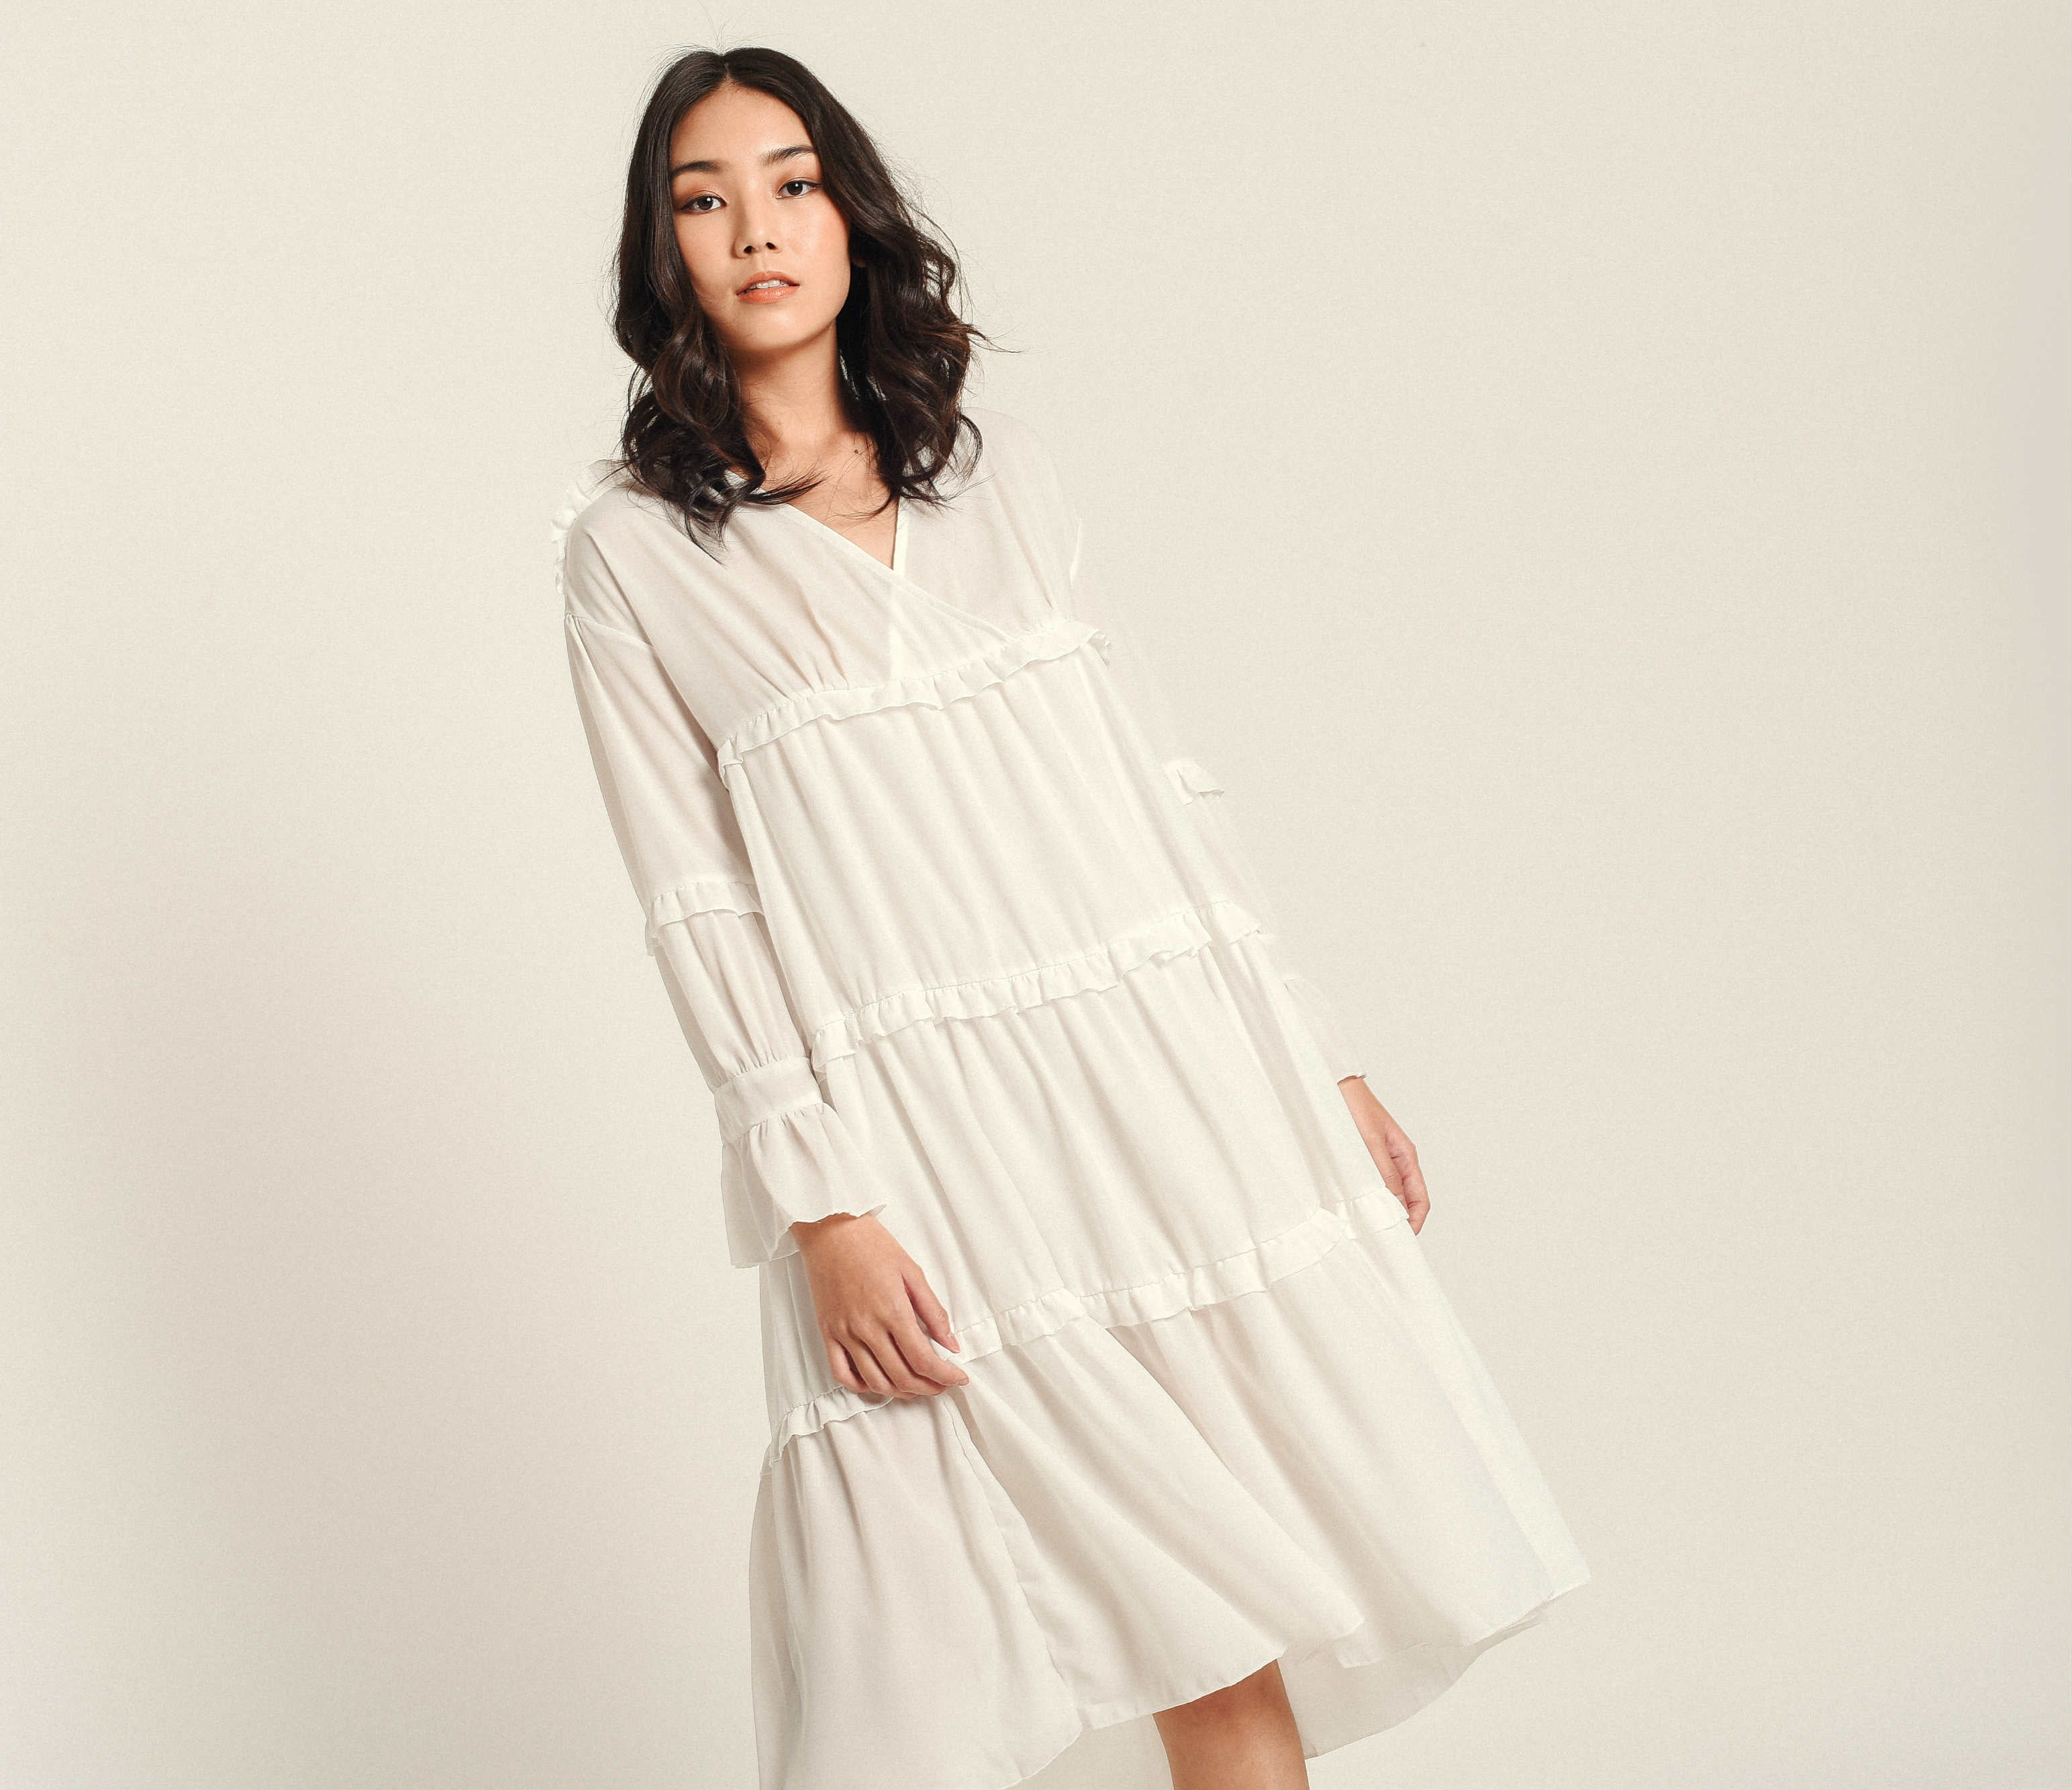 Ferline Layered Dress